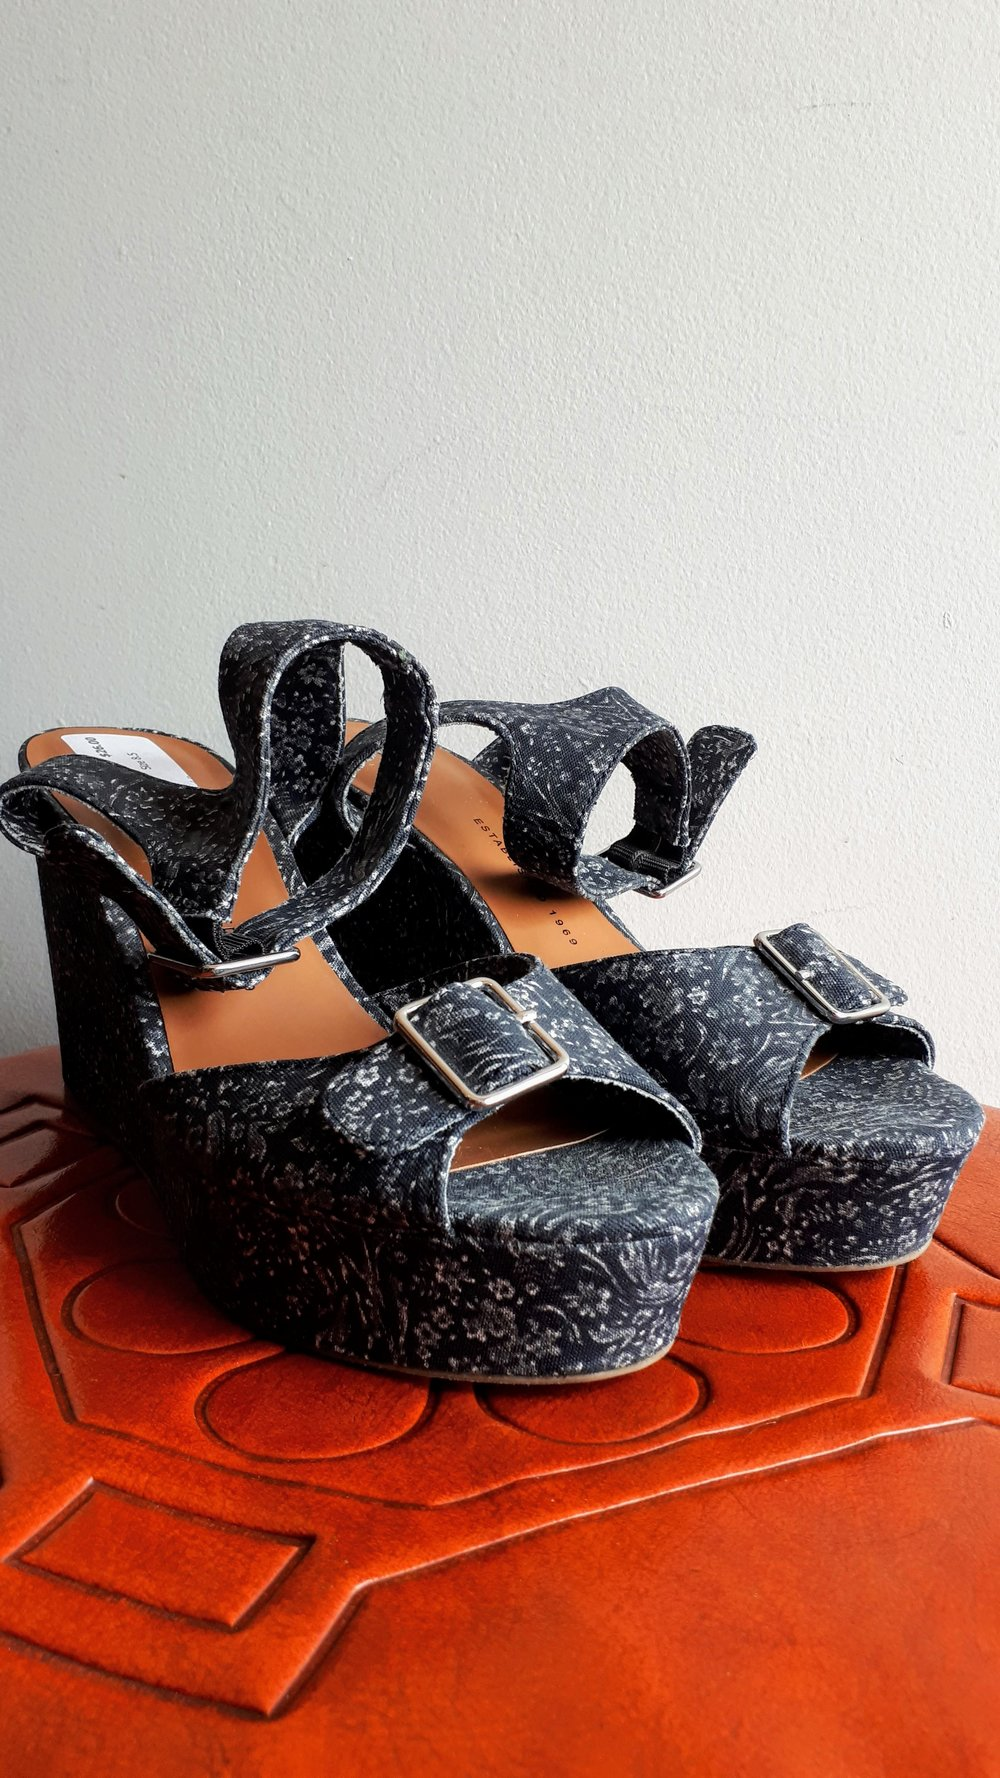 Gap shoes; S8.5, $26